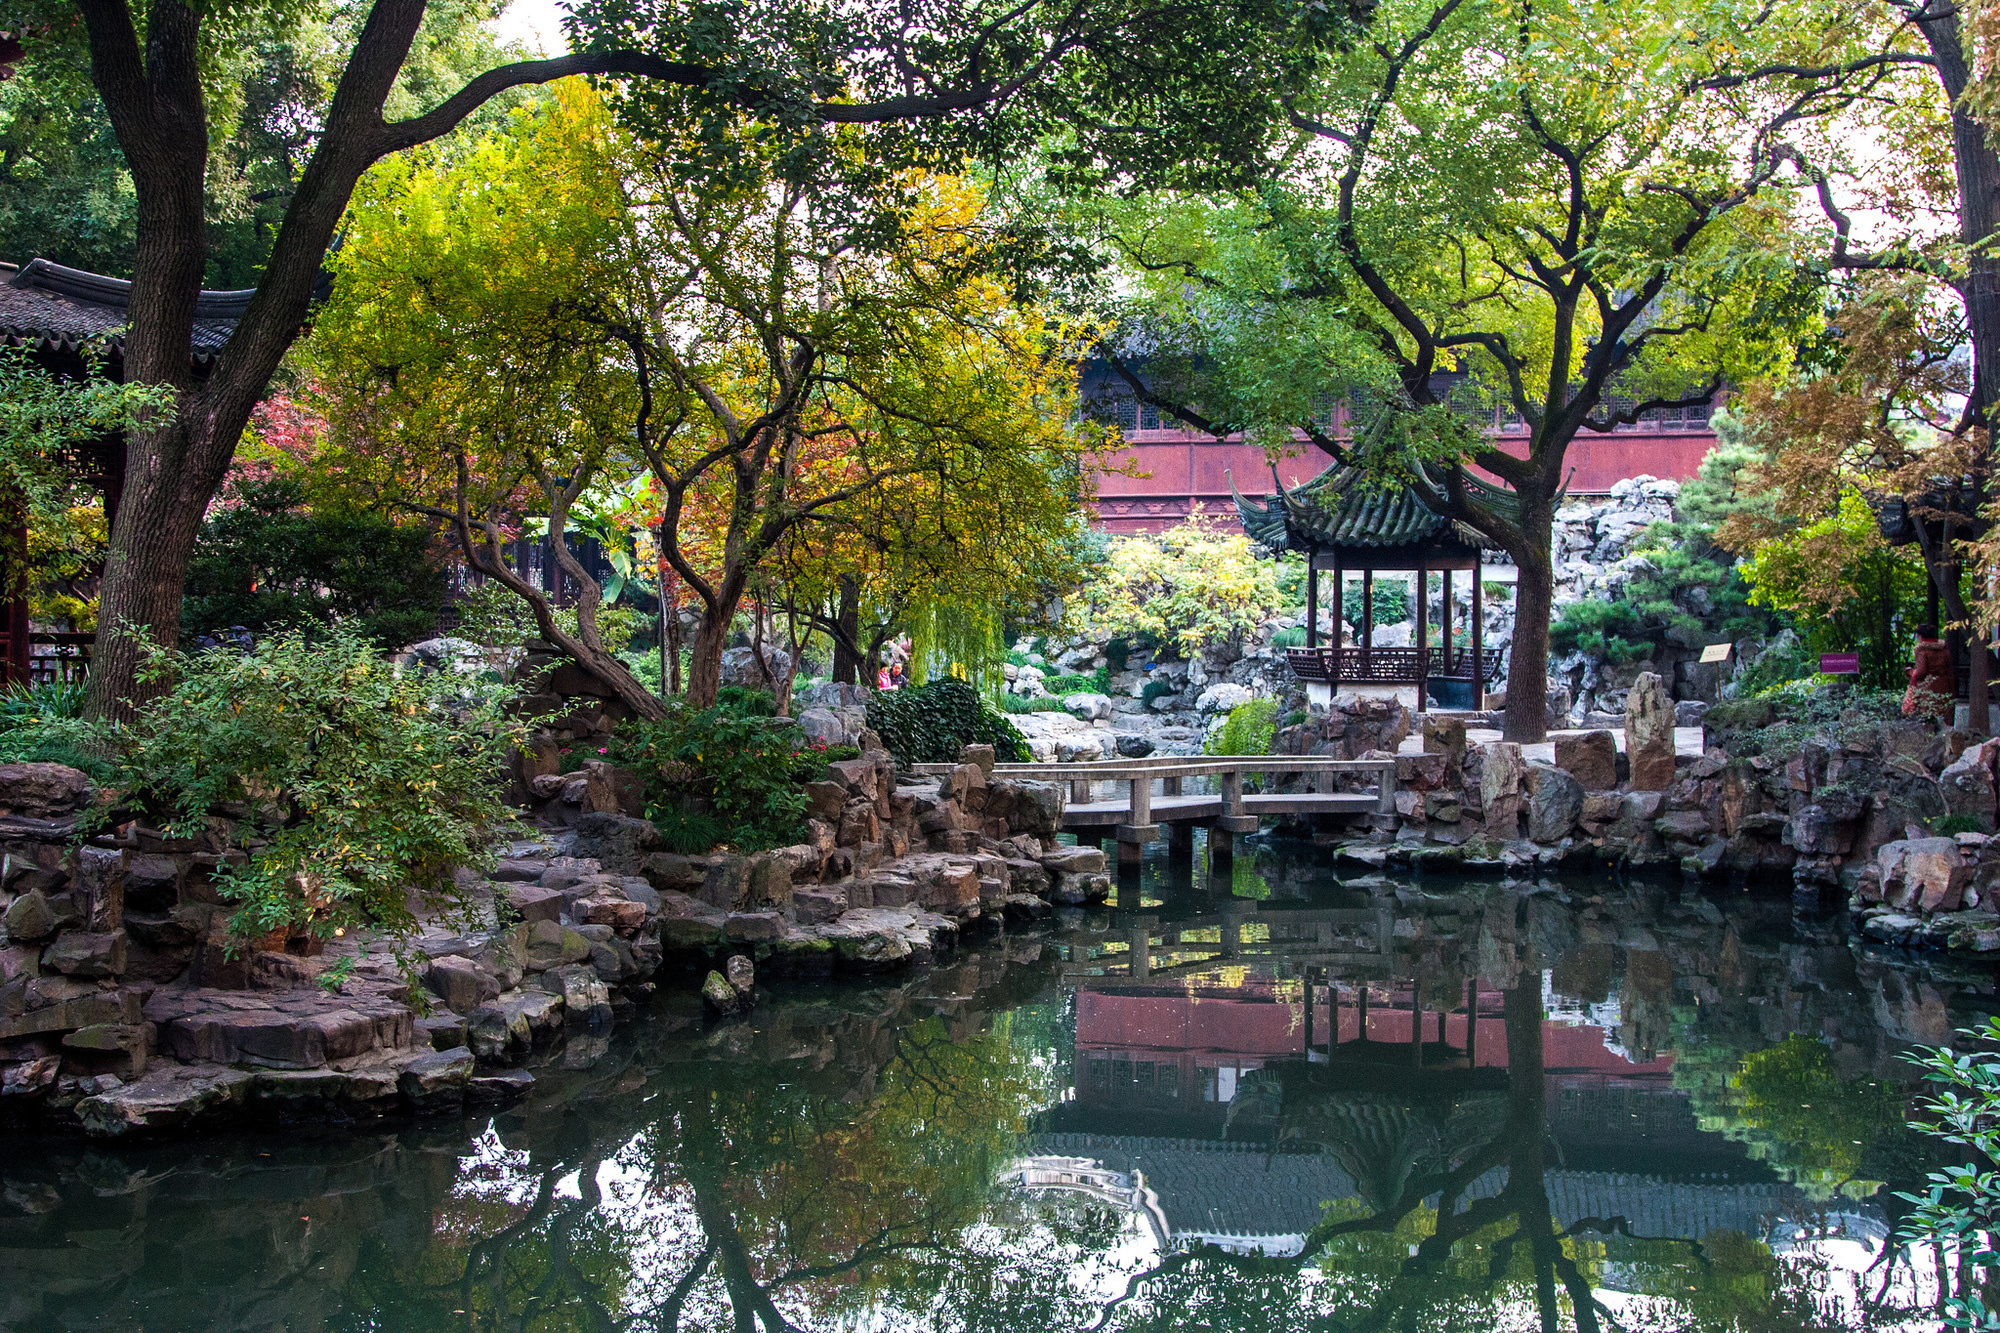 Yuyuan Garden in China was built during the Ming Dynast